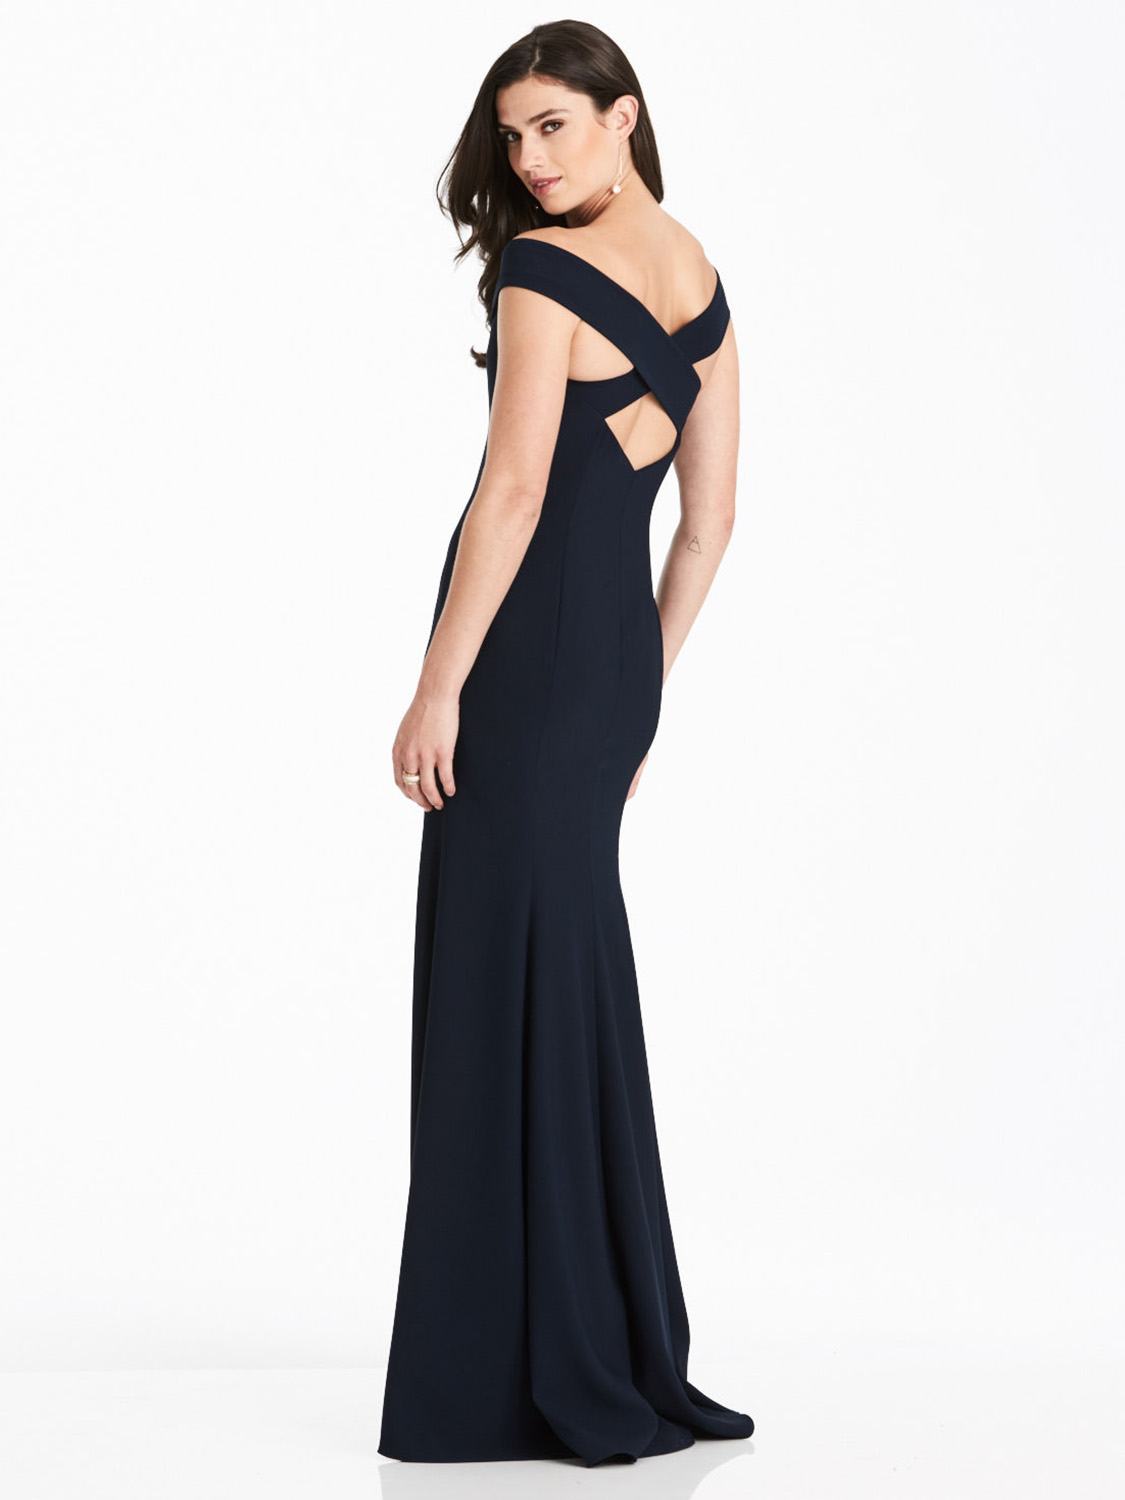 Criss cross back detail of Dessy group bridesmaid dress 3012